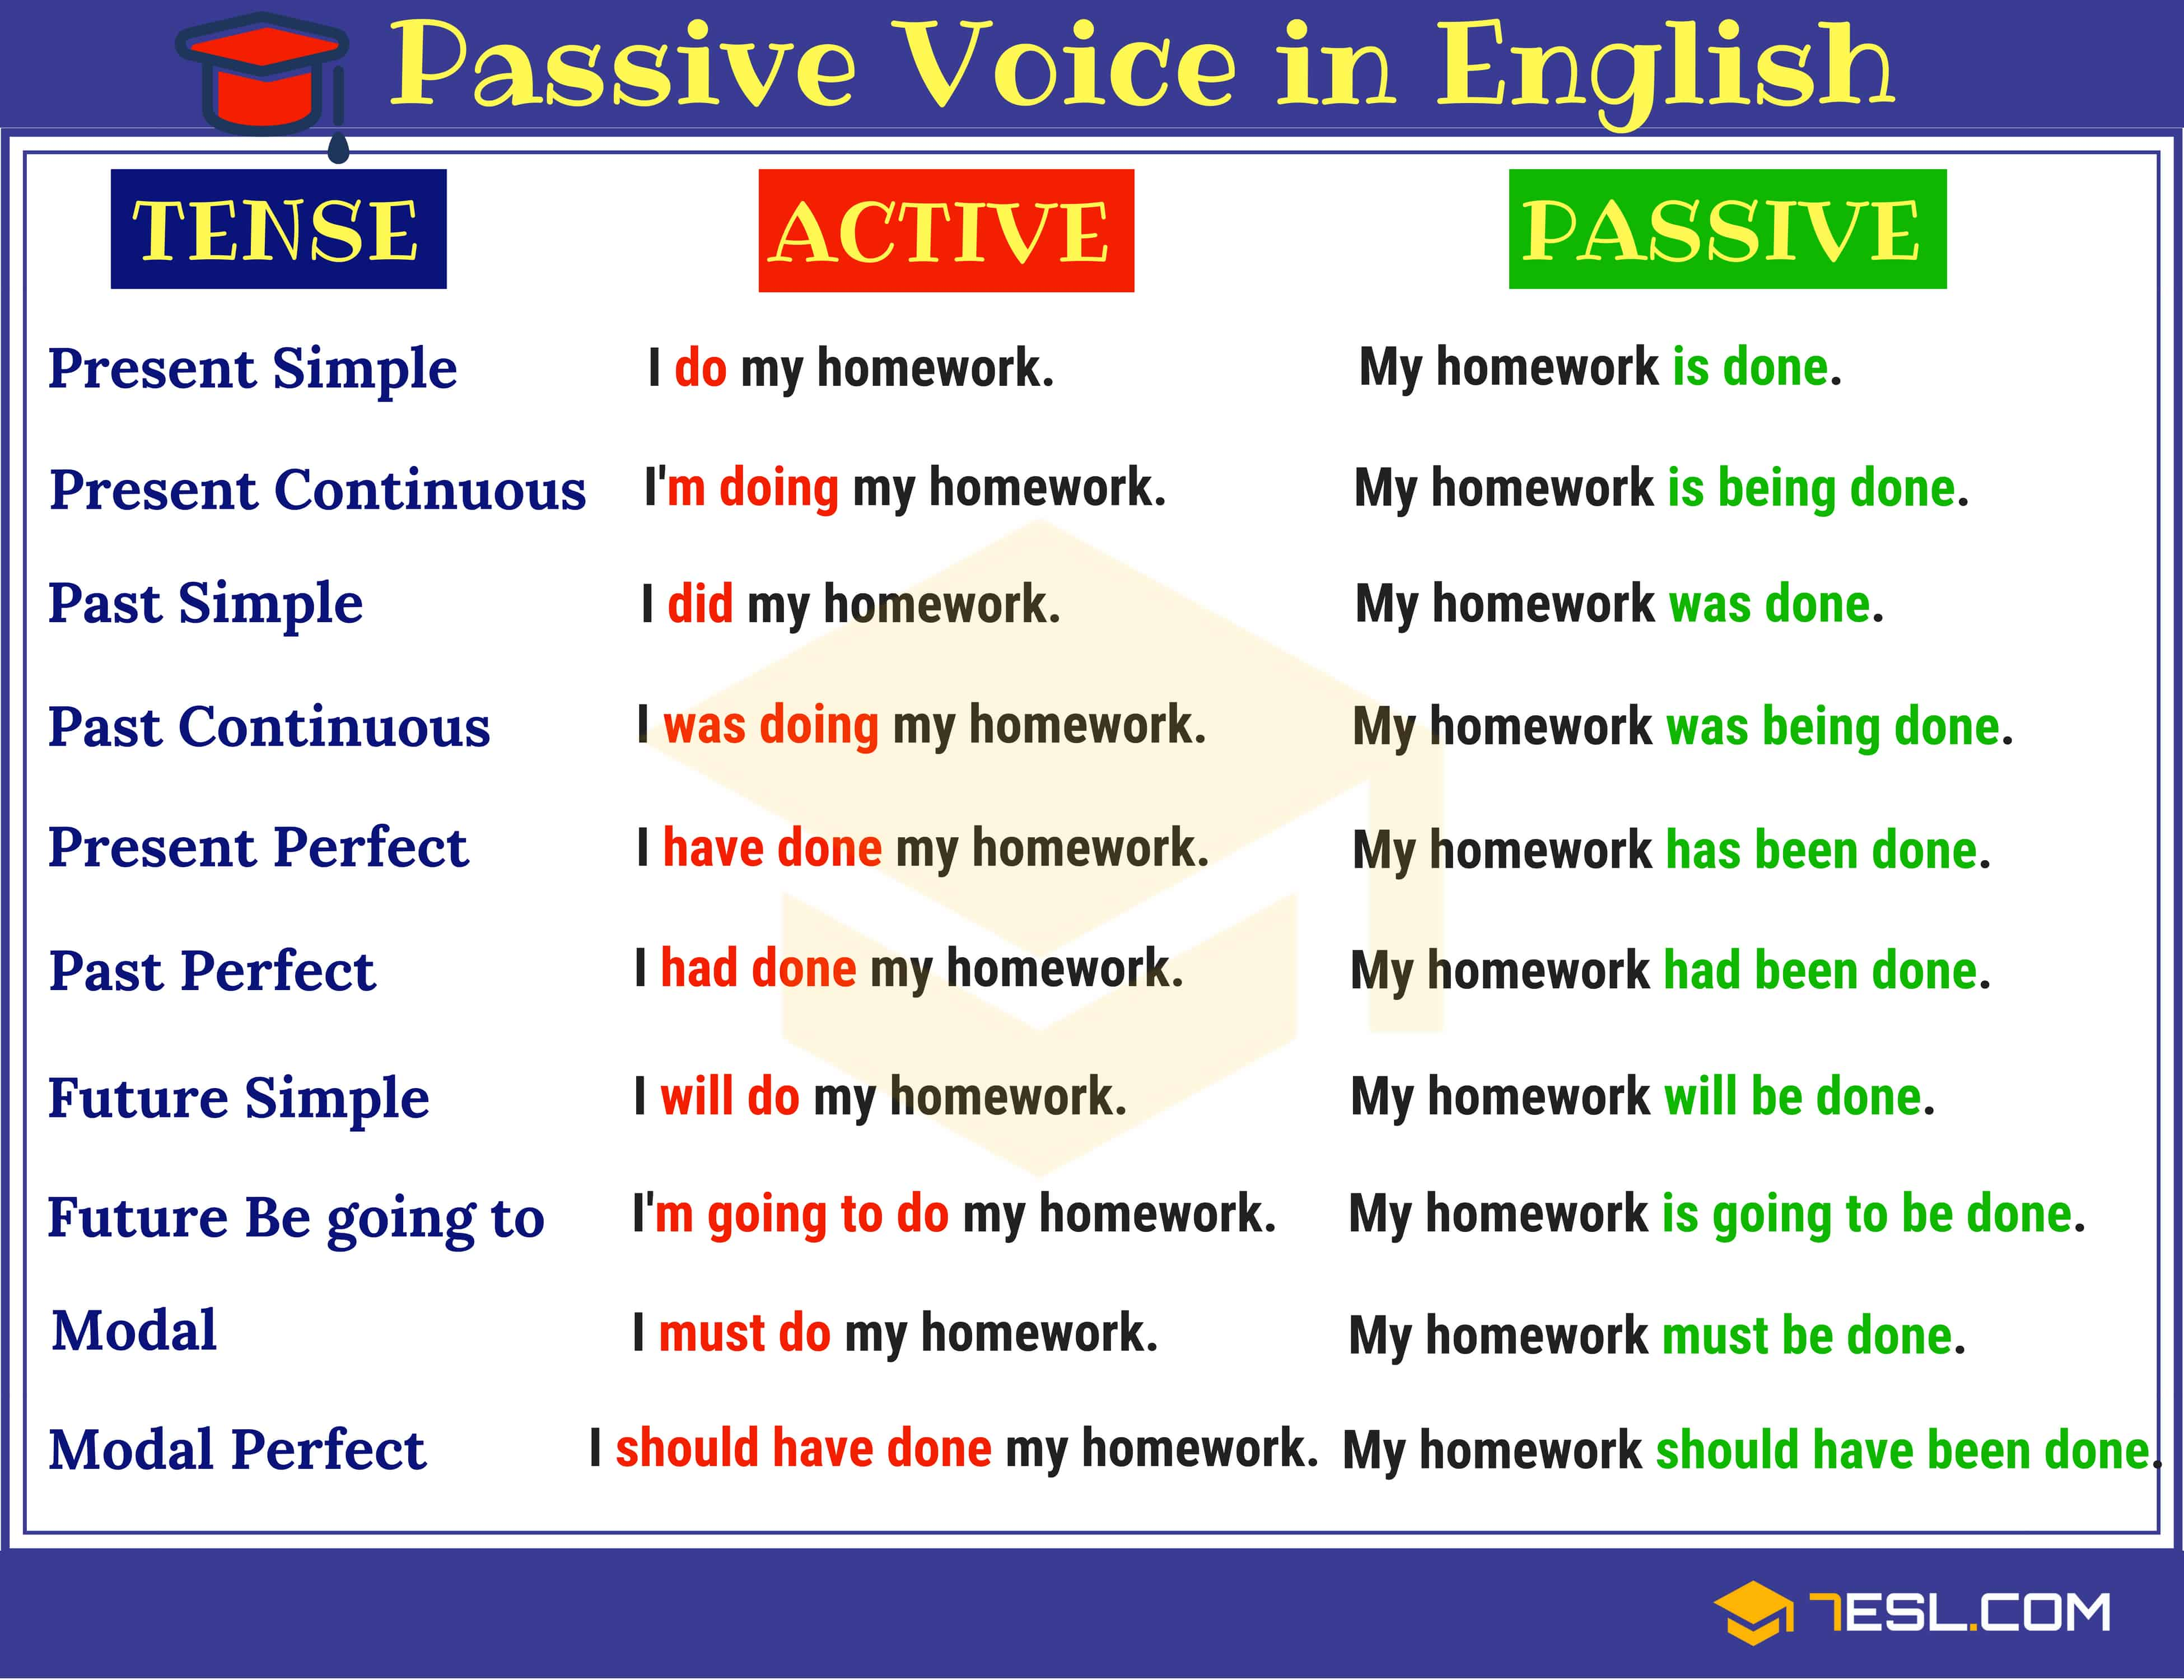 Passive Voice Rules for All Tenses | Examples of Active & Passive Voice